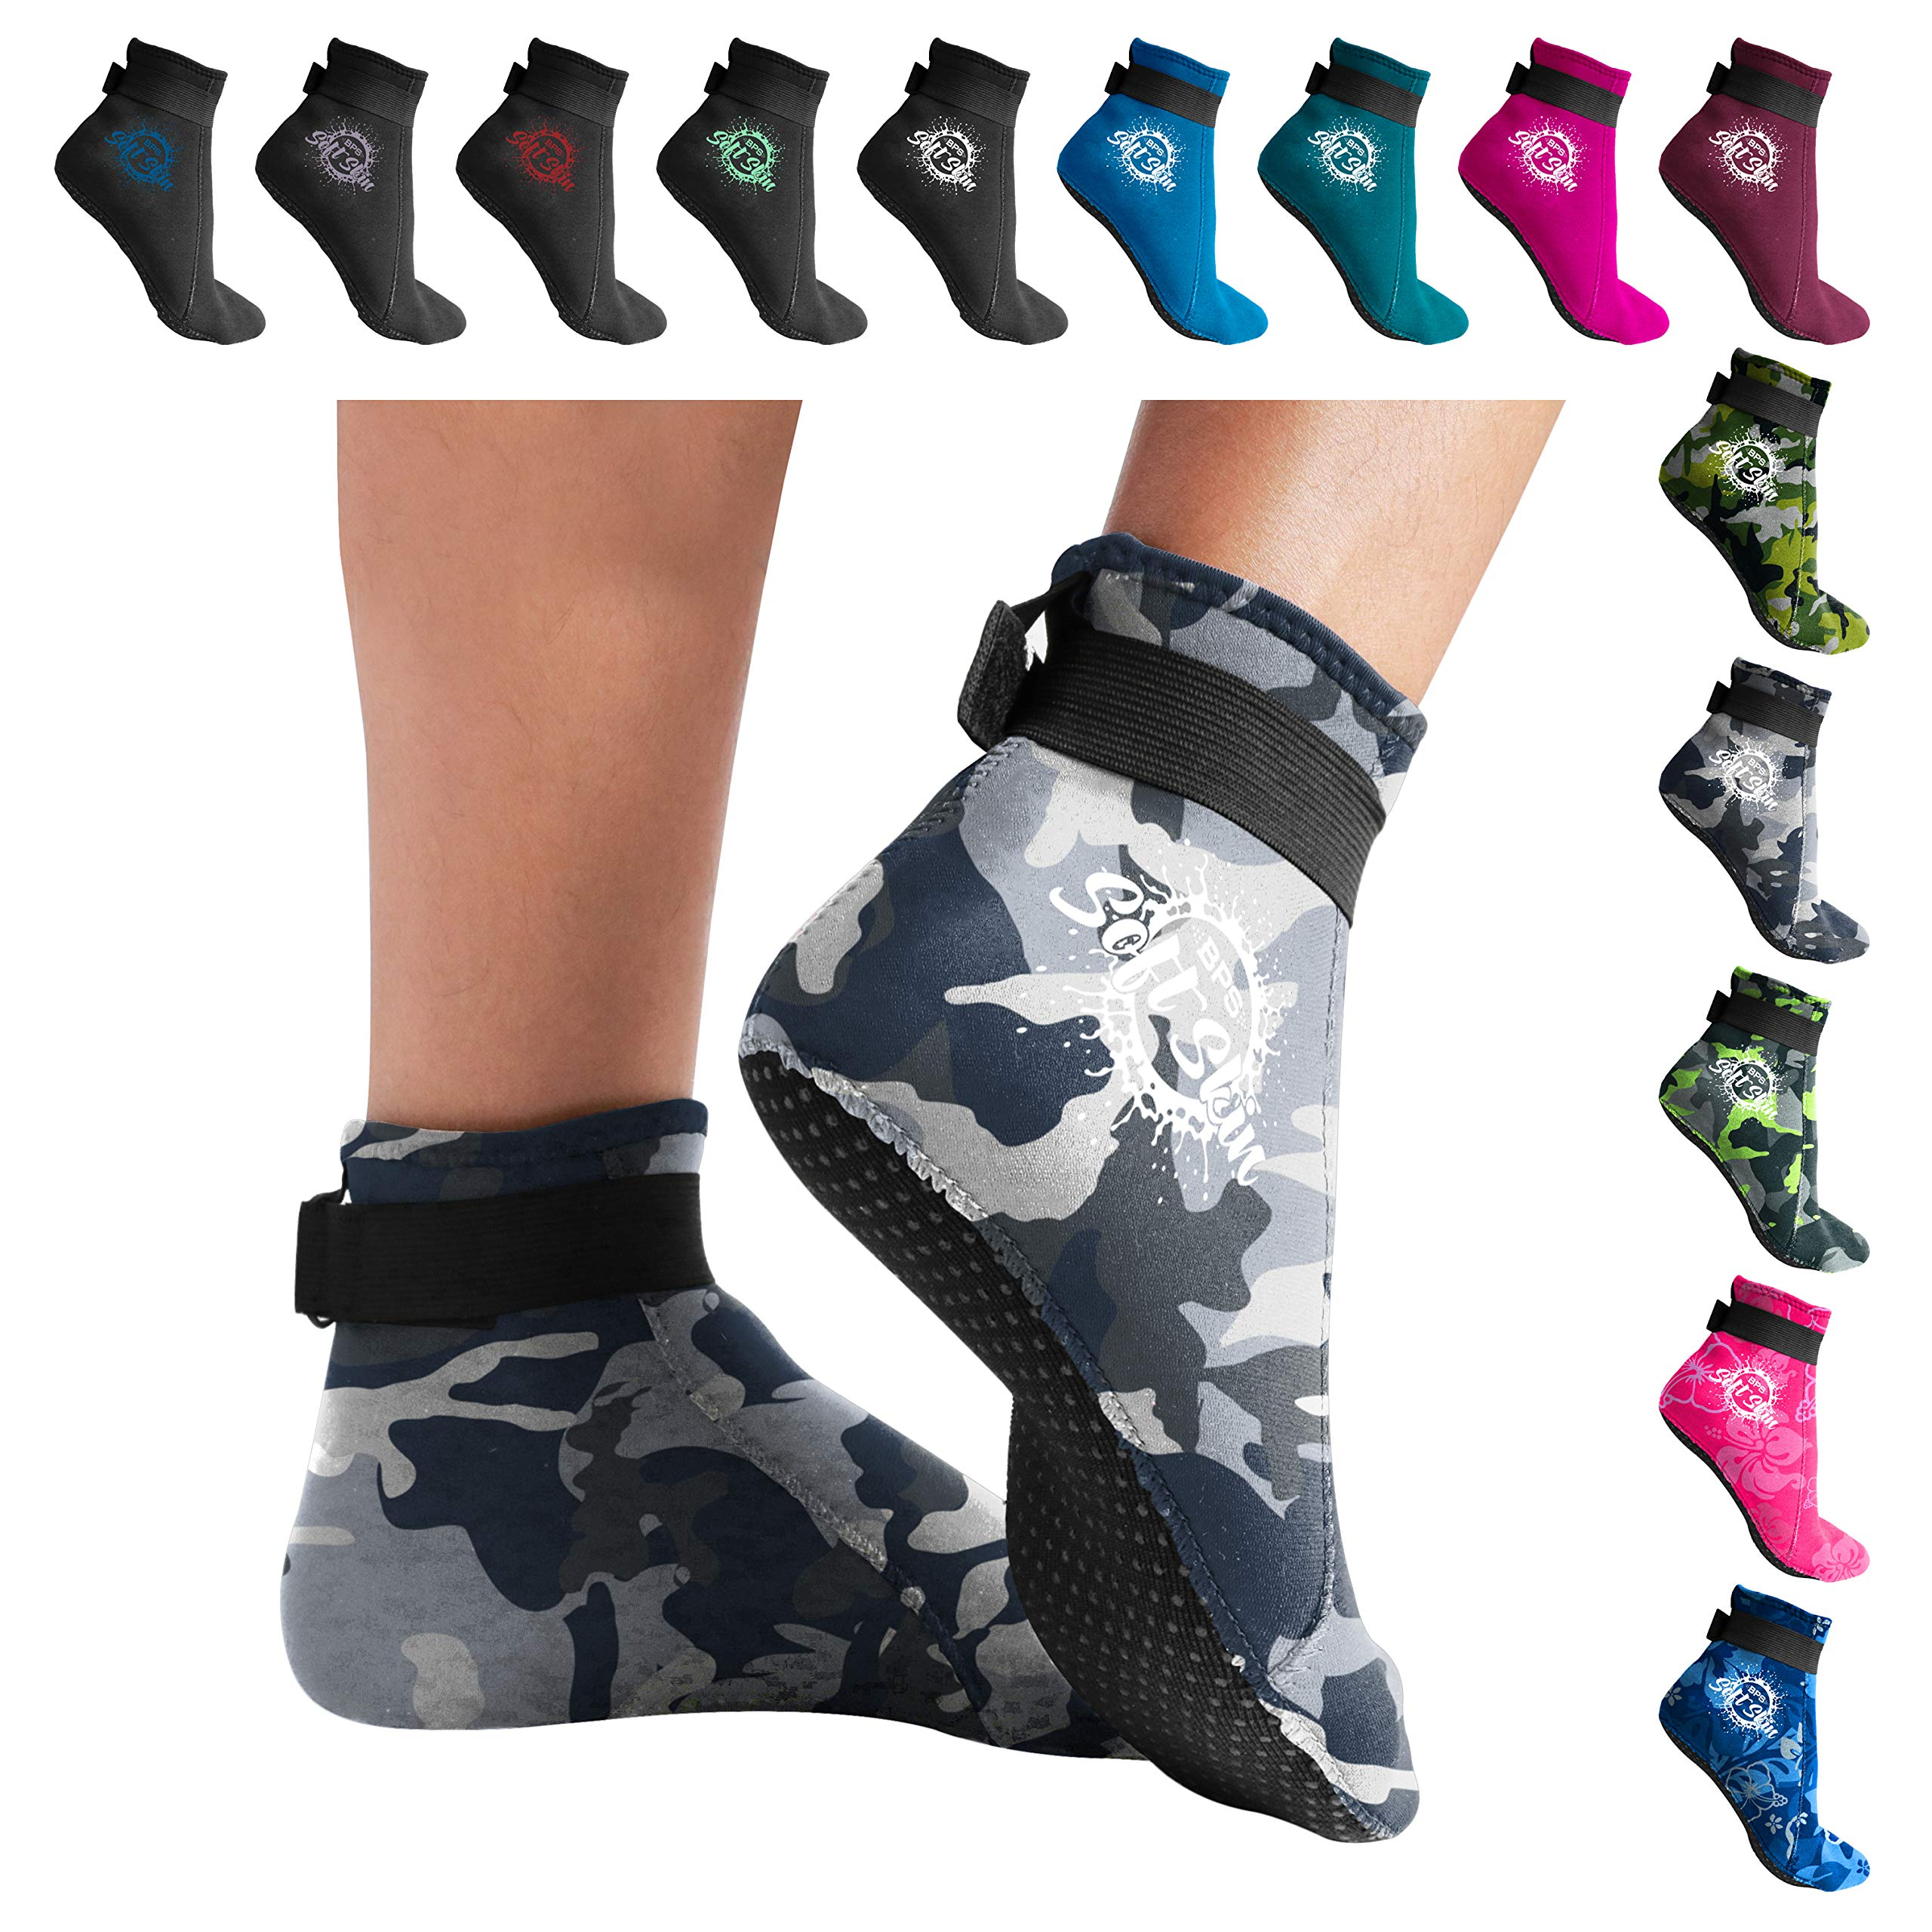 BPS 'Soft Skin' 3mm Neoprene Diving Socks with Grip - Sand, surf, Snorkel, Kayak, and Other Water Sports - Low Cut (Grey Camo, L)